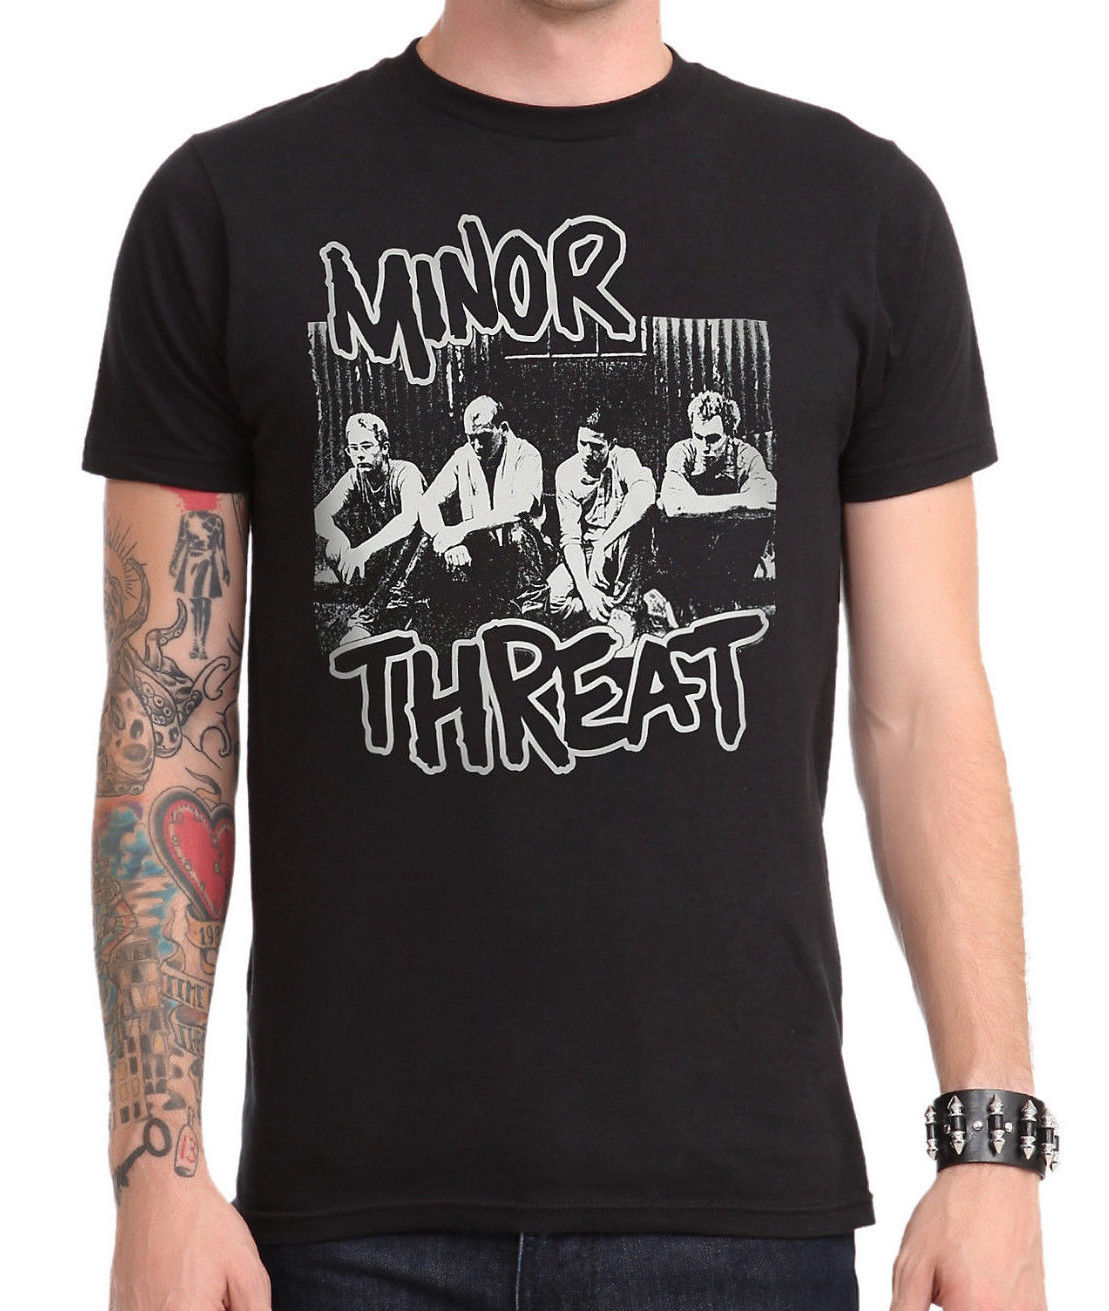 Minor threat group photo black t shirt brand new 2017 new for Group t shirts cheap